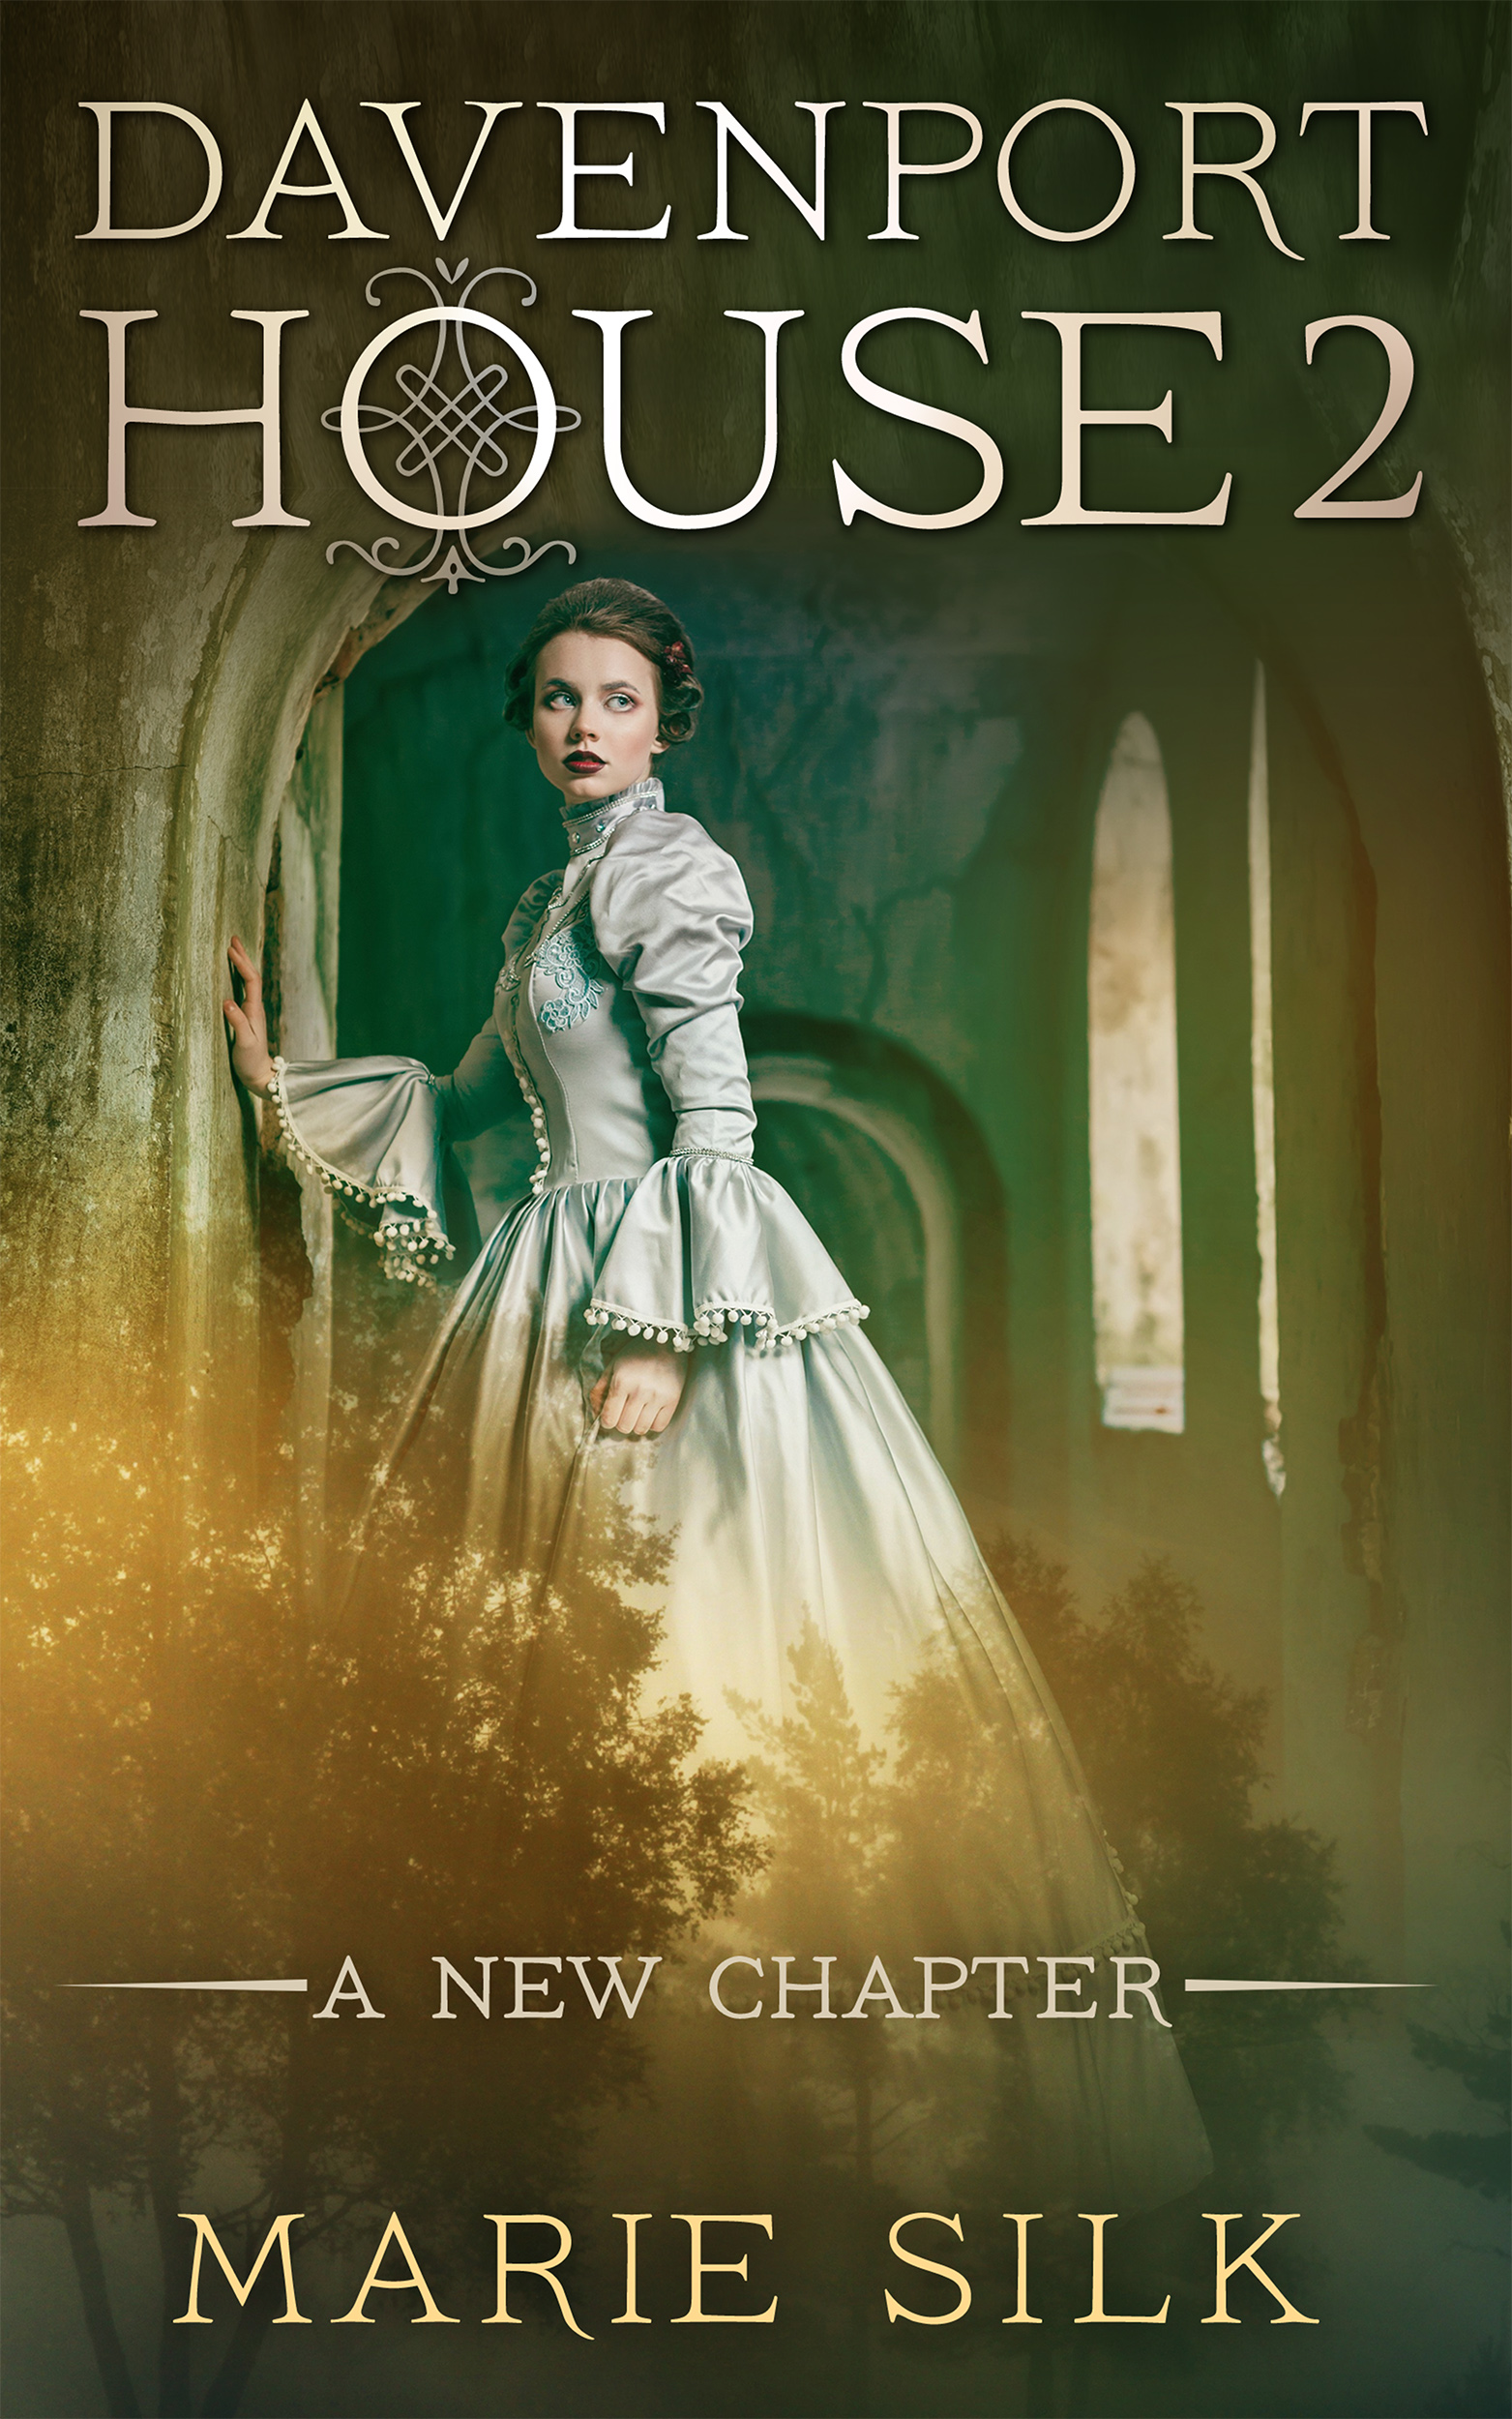 Davenport House 2 - Ebook Small